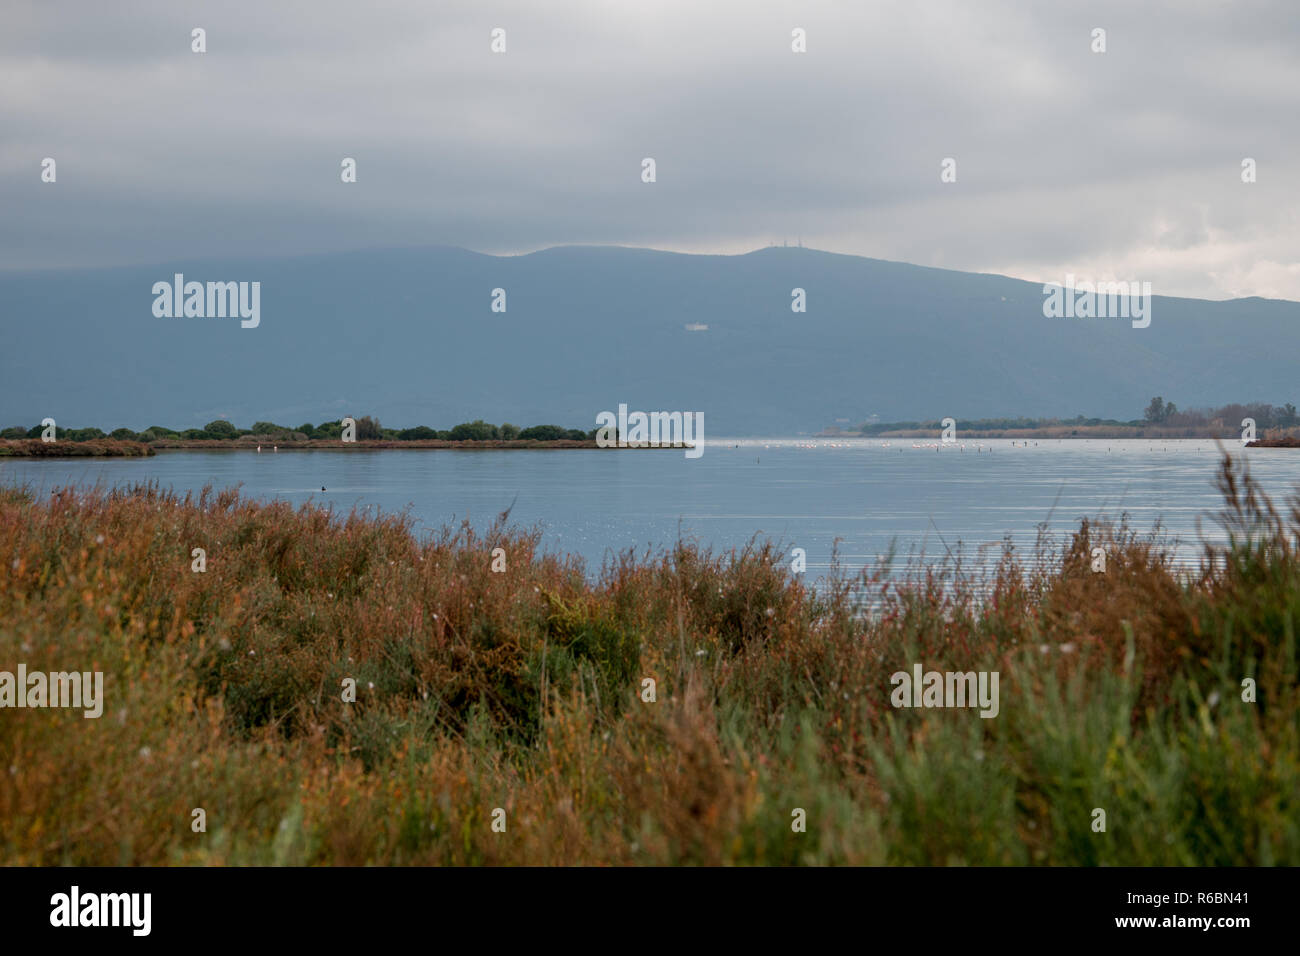 Lake in the Natural Reserve of Orbetello in autumn, with the Mount Argentario in the background. - Stock Image